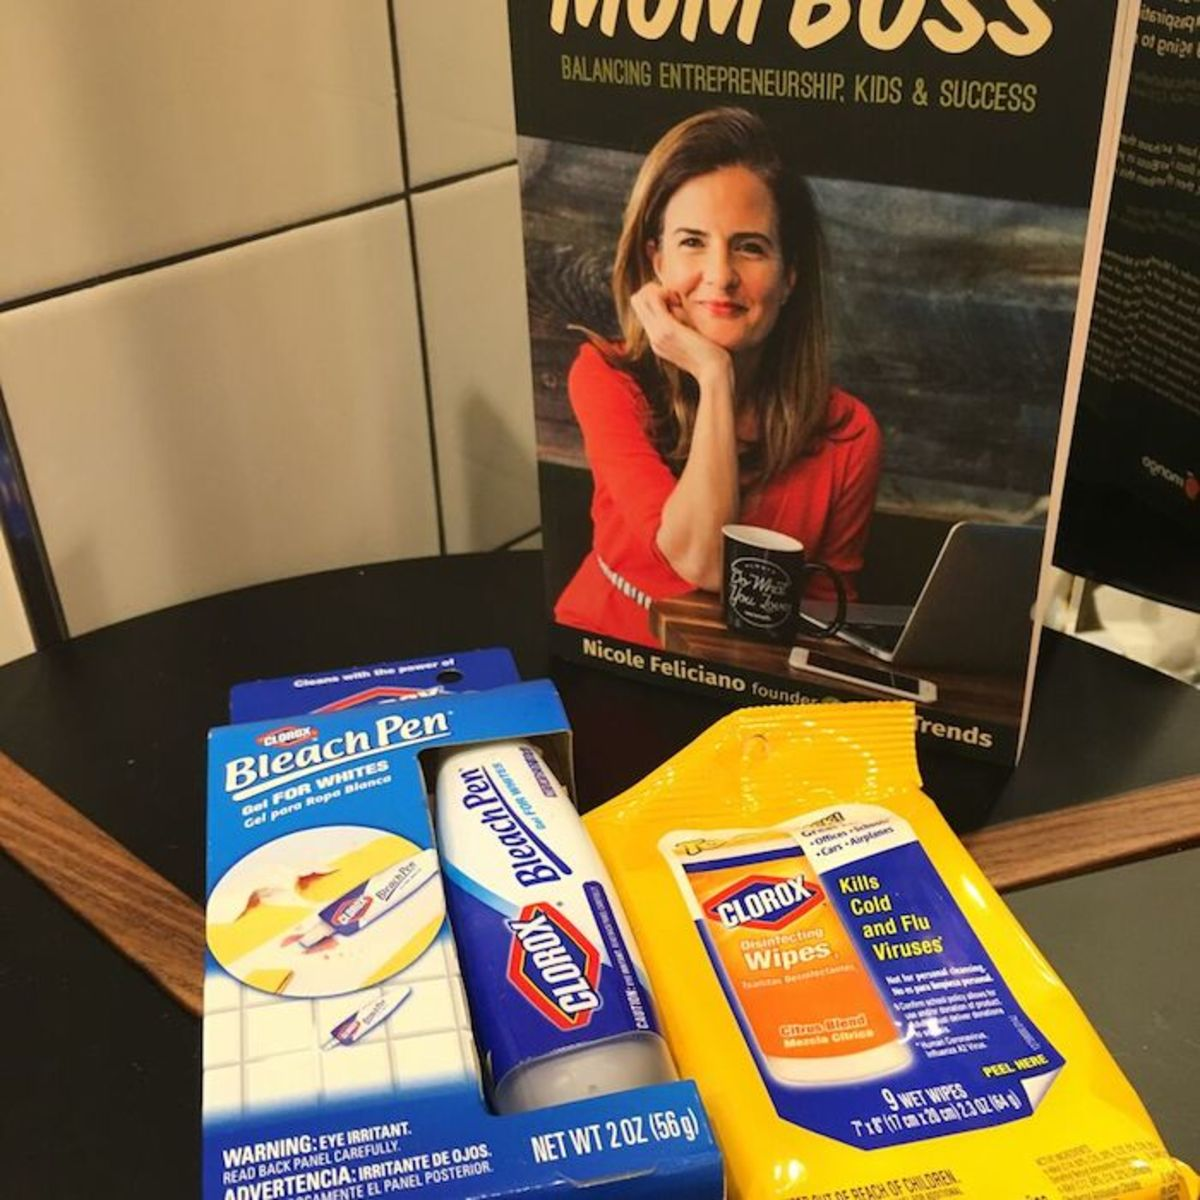 mom boss and clorox